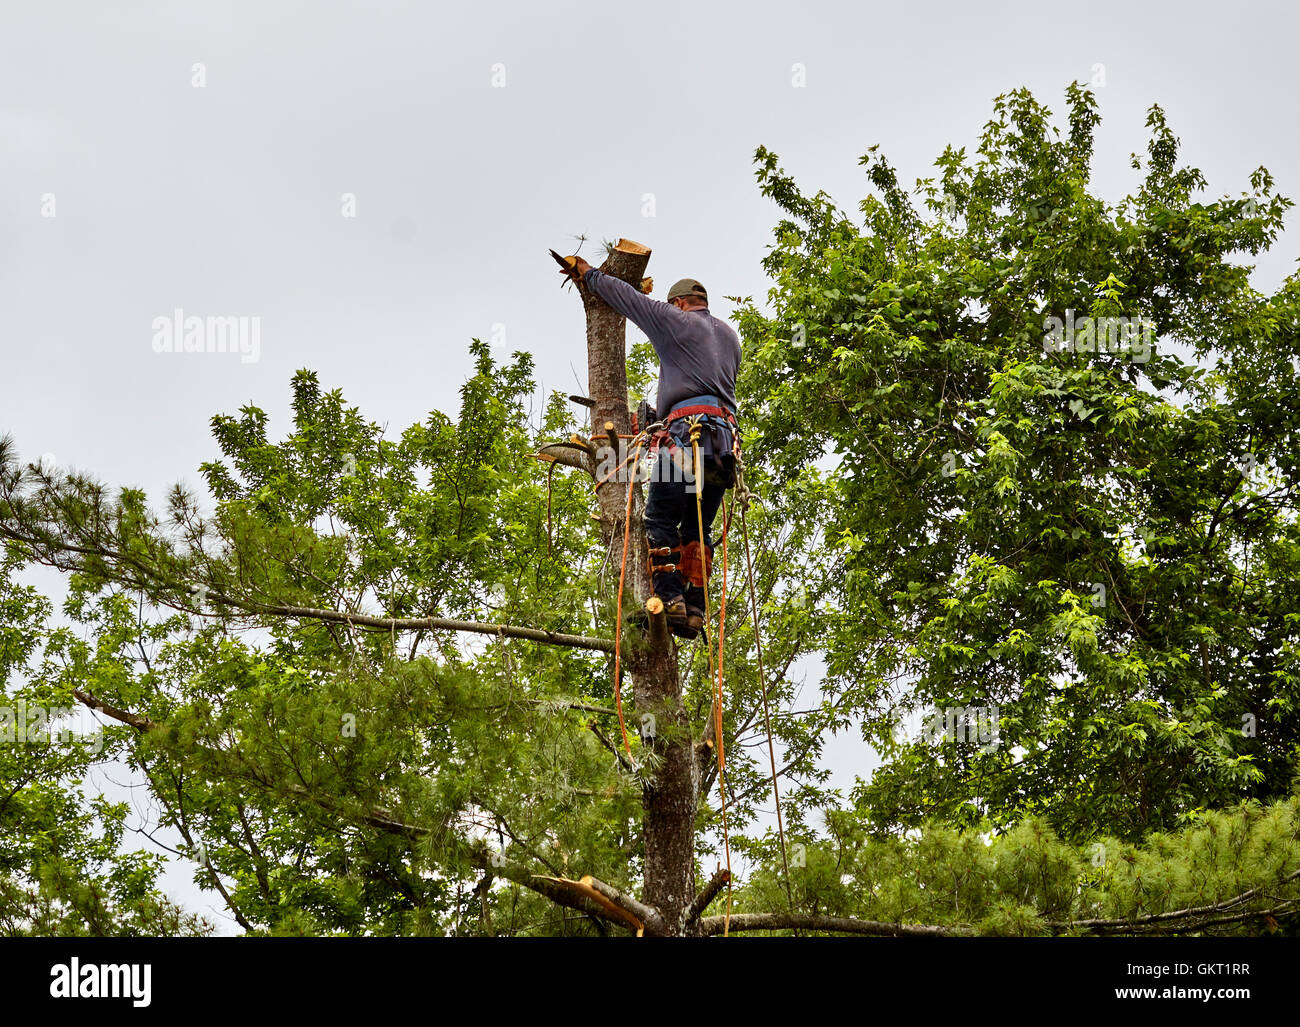 Professional Tree trimmer cutting the top of a tree trunk with a chain saw Stock Photo